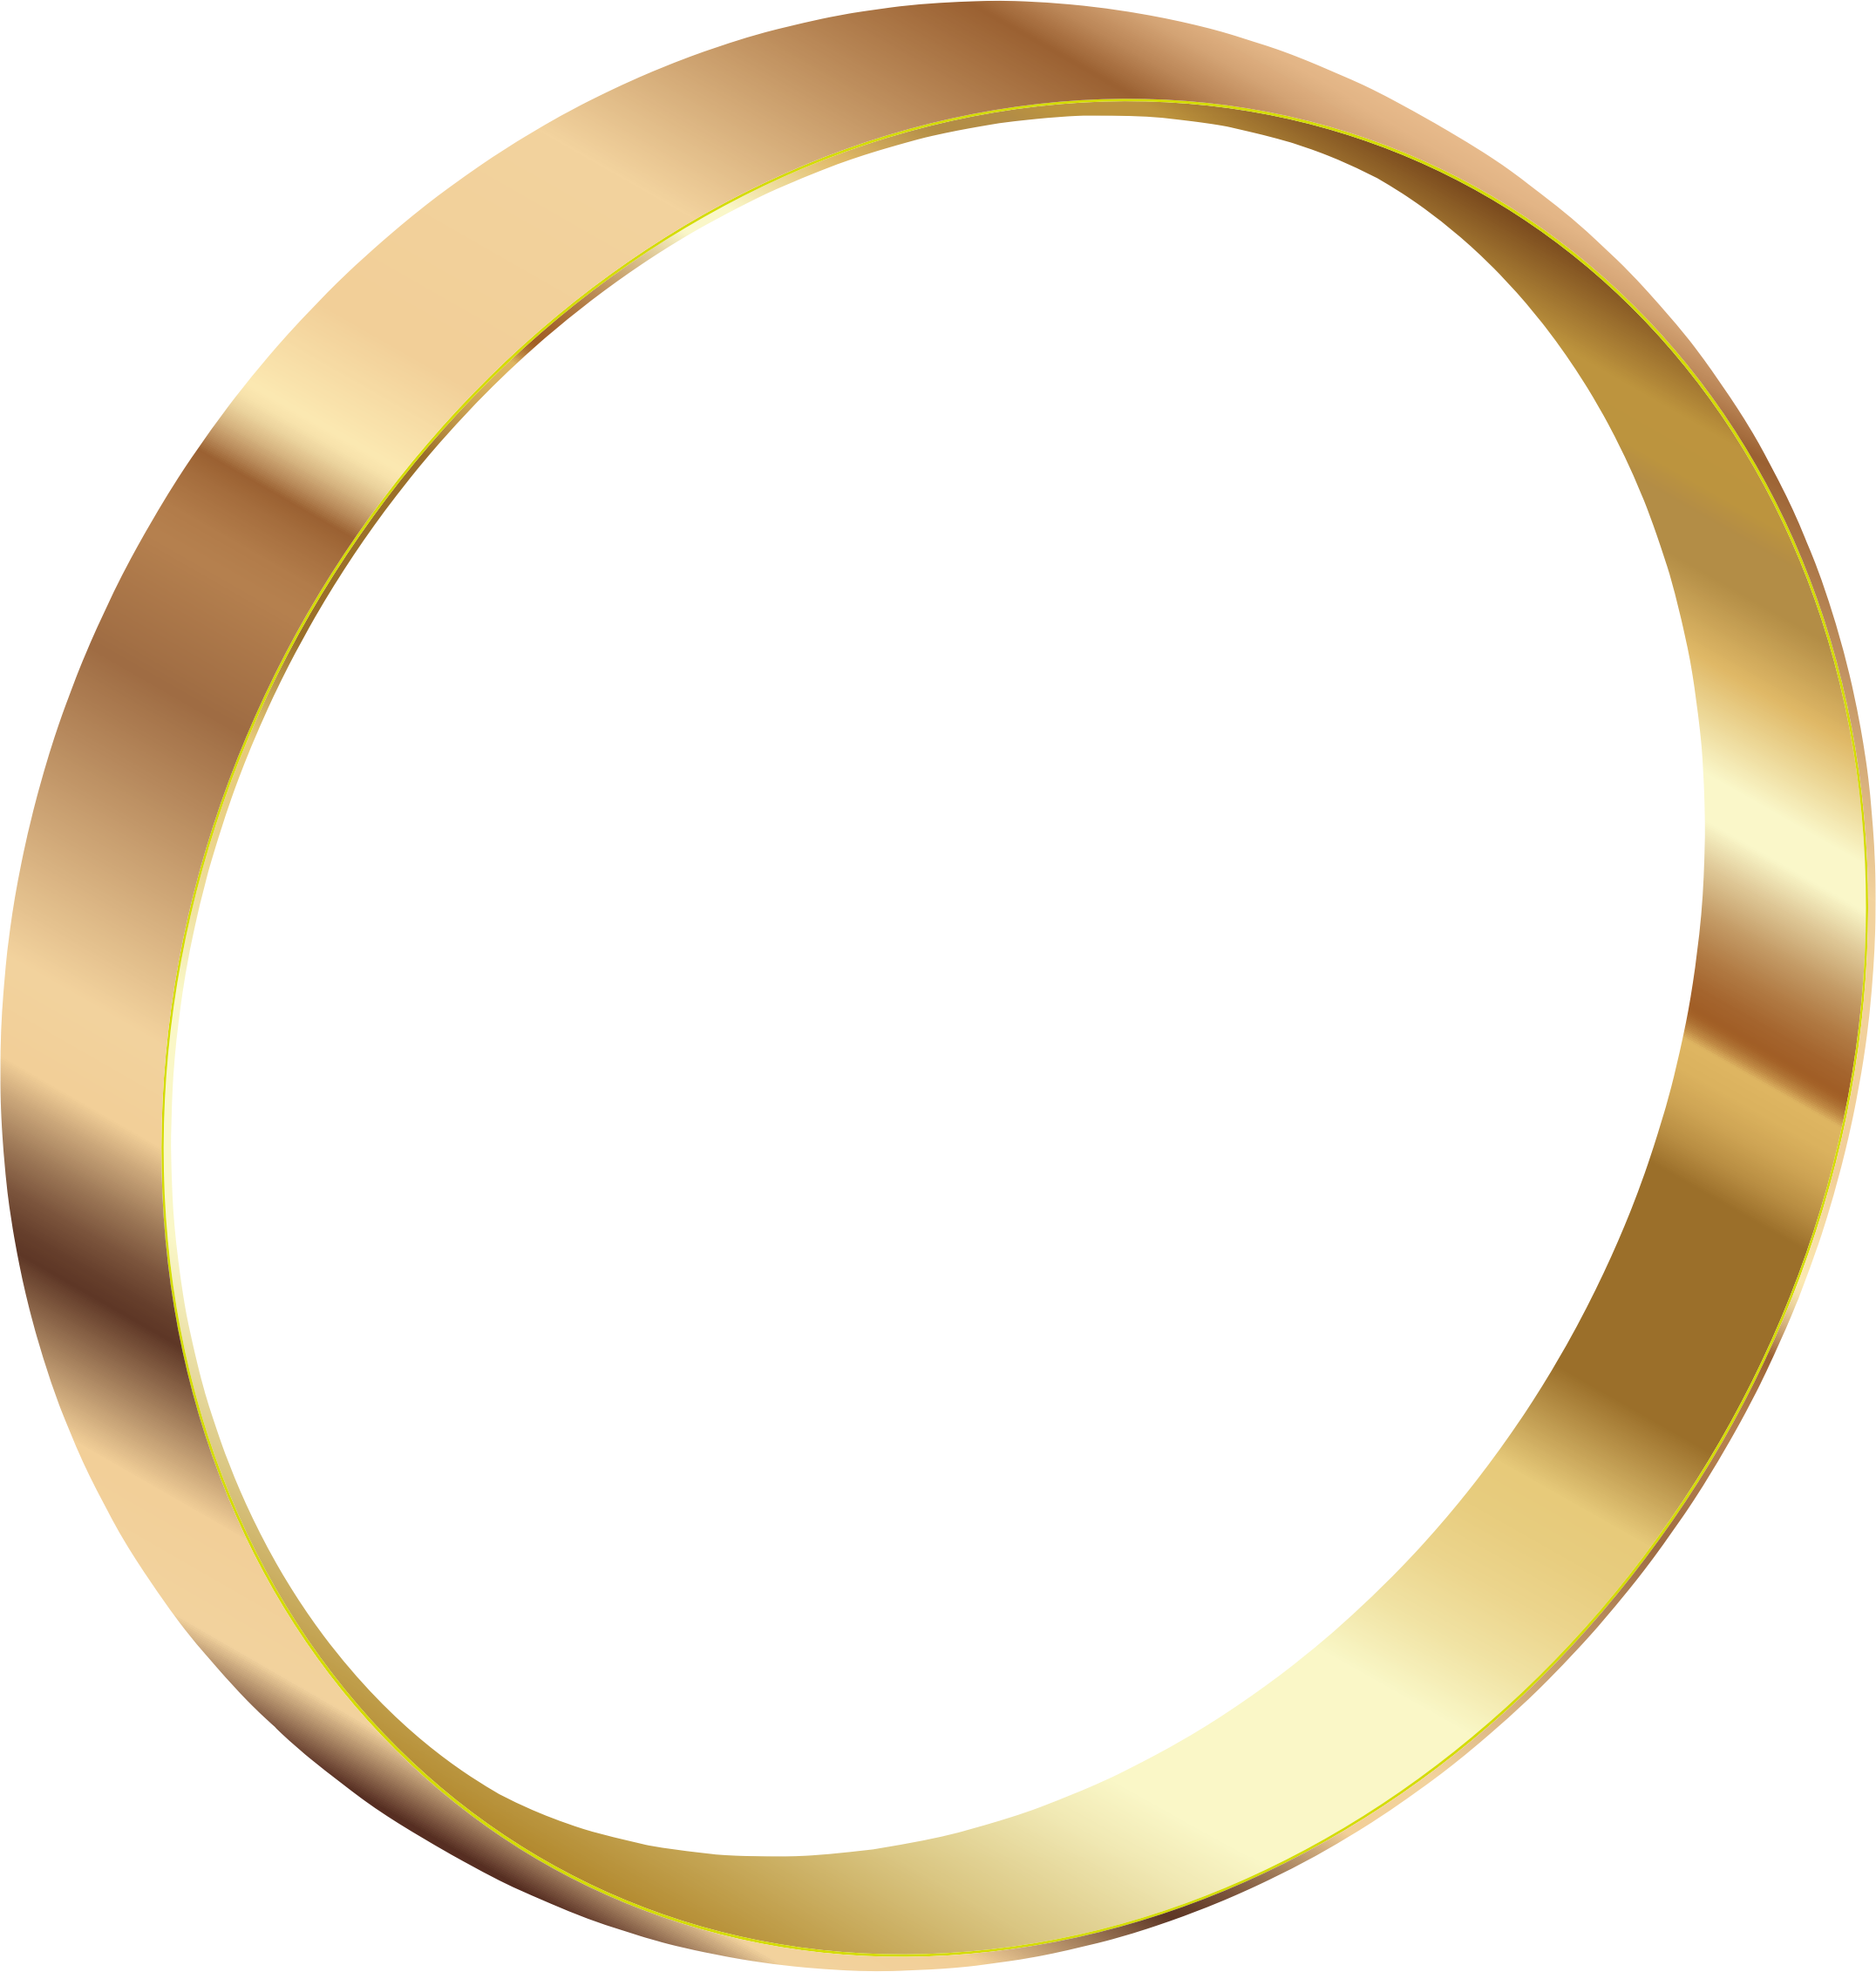 Free gold png backgrounds. Ring image purepng transparent